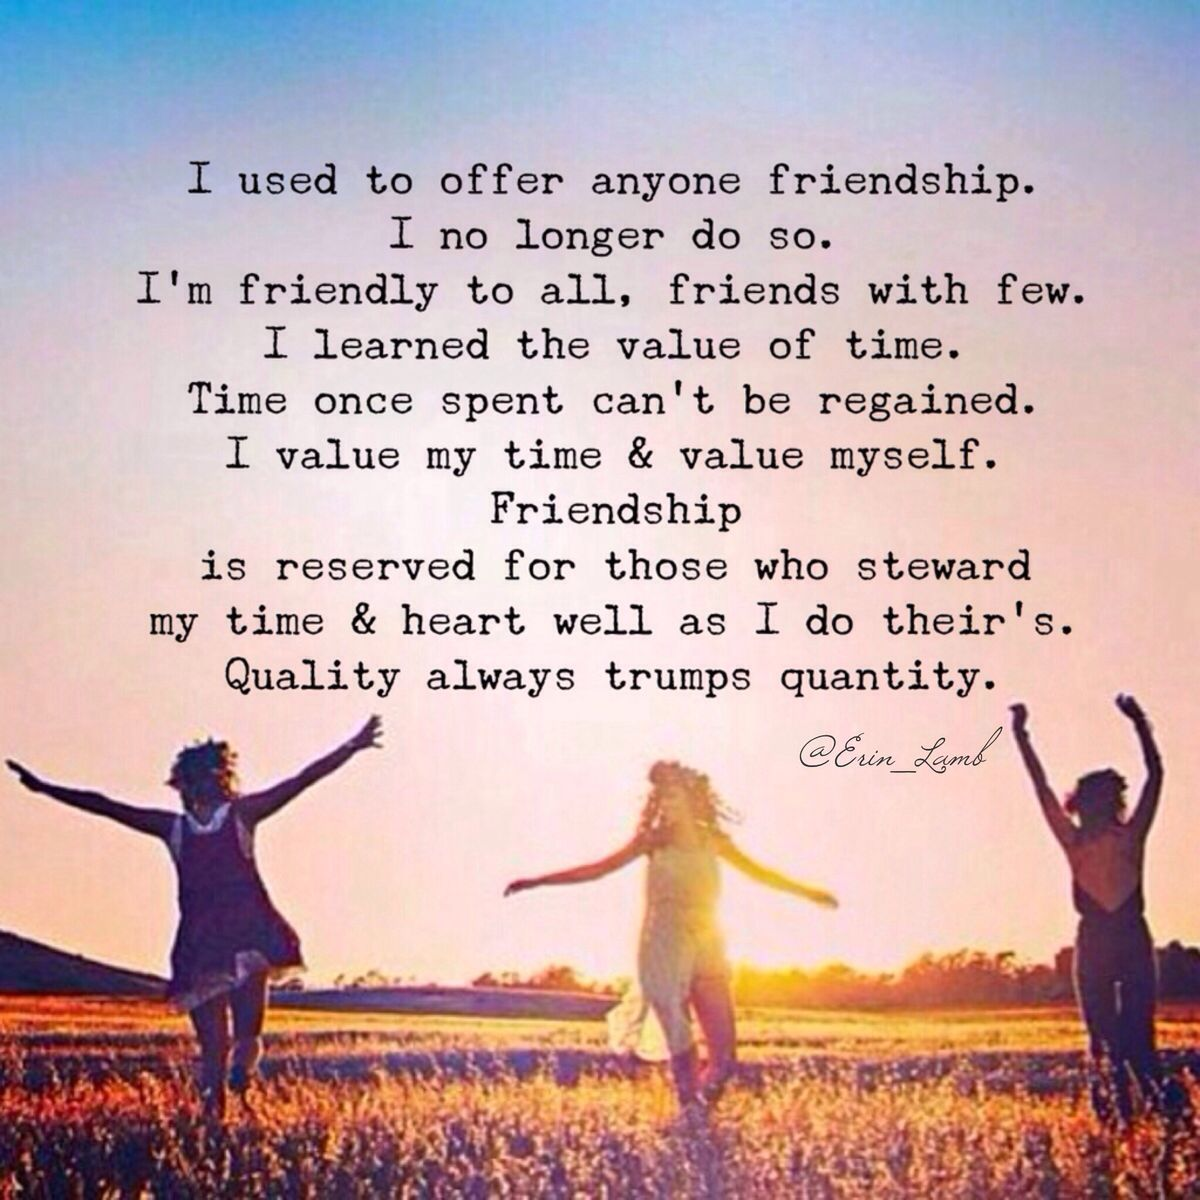 I Cherish The Friendship With Those Just As Much As Those